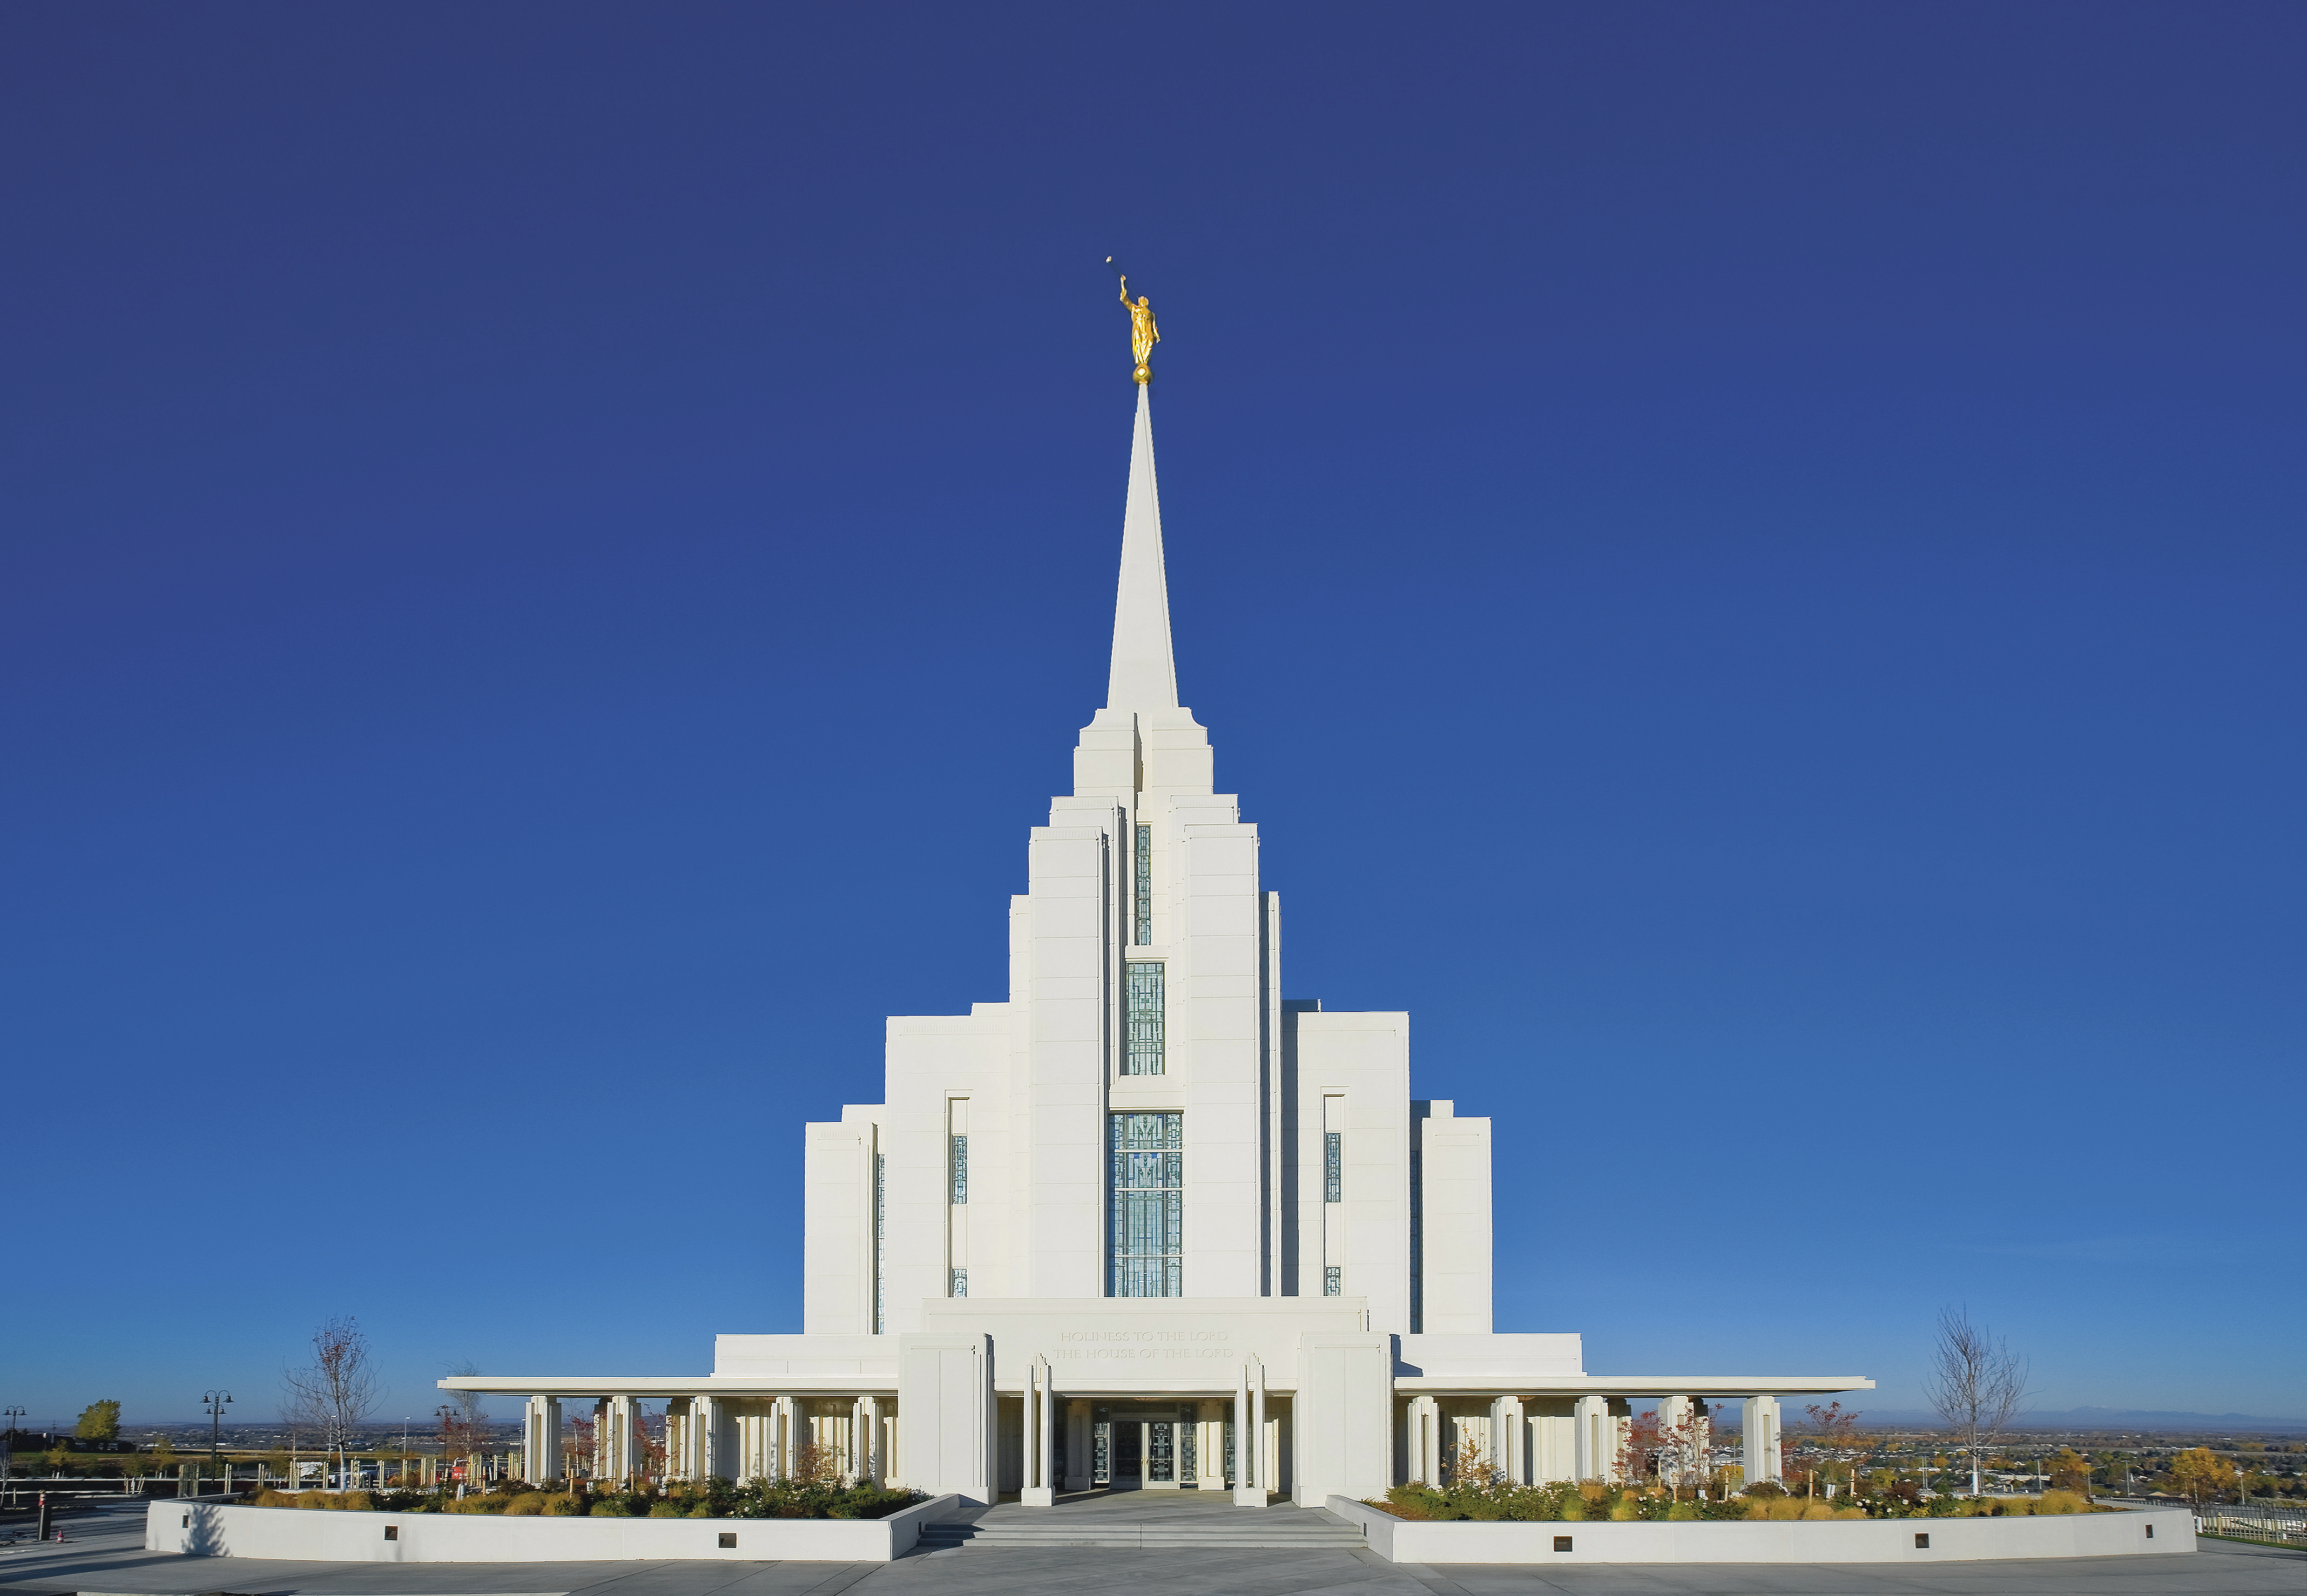 The entire Rexburg Idaho Temple, including the entrance and scenery.